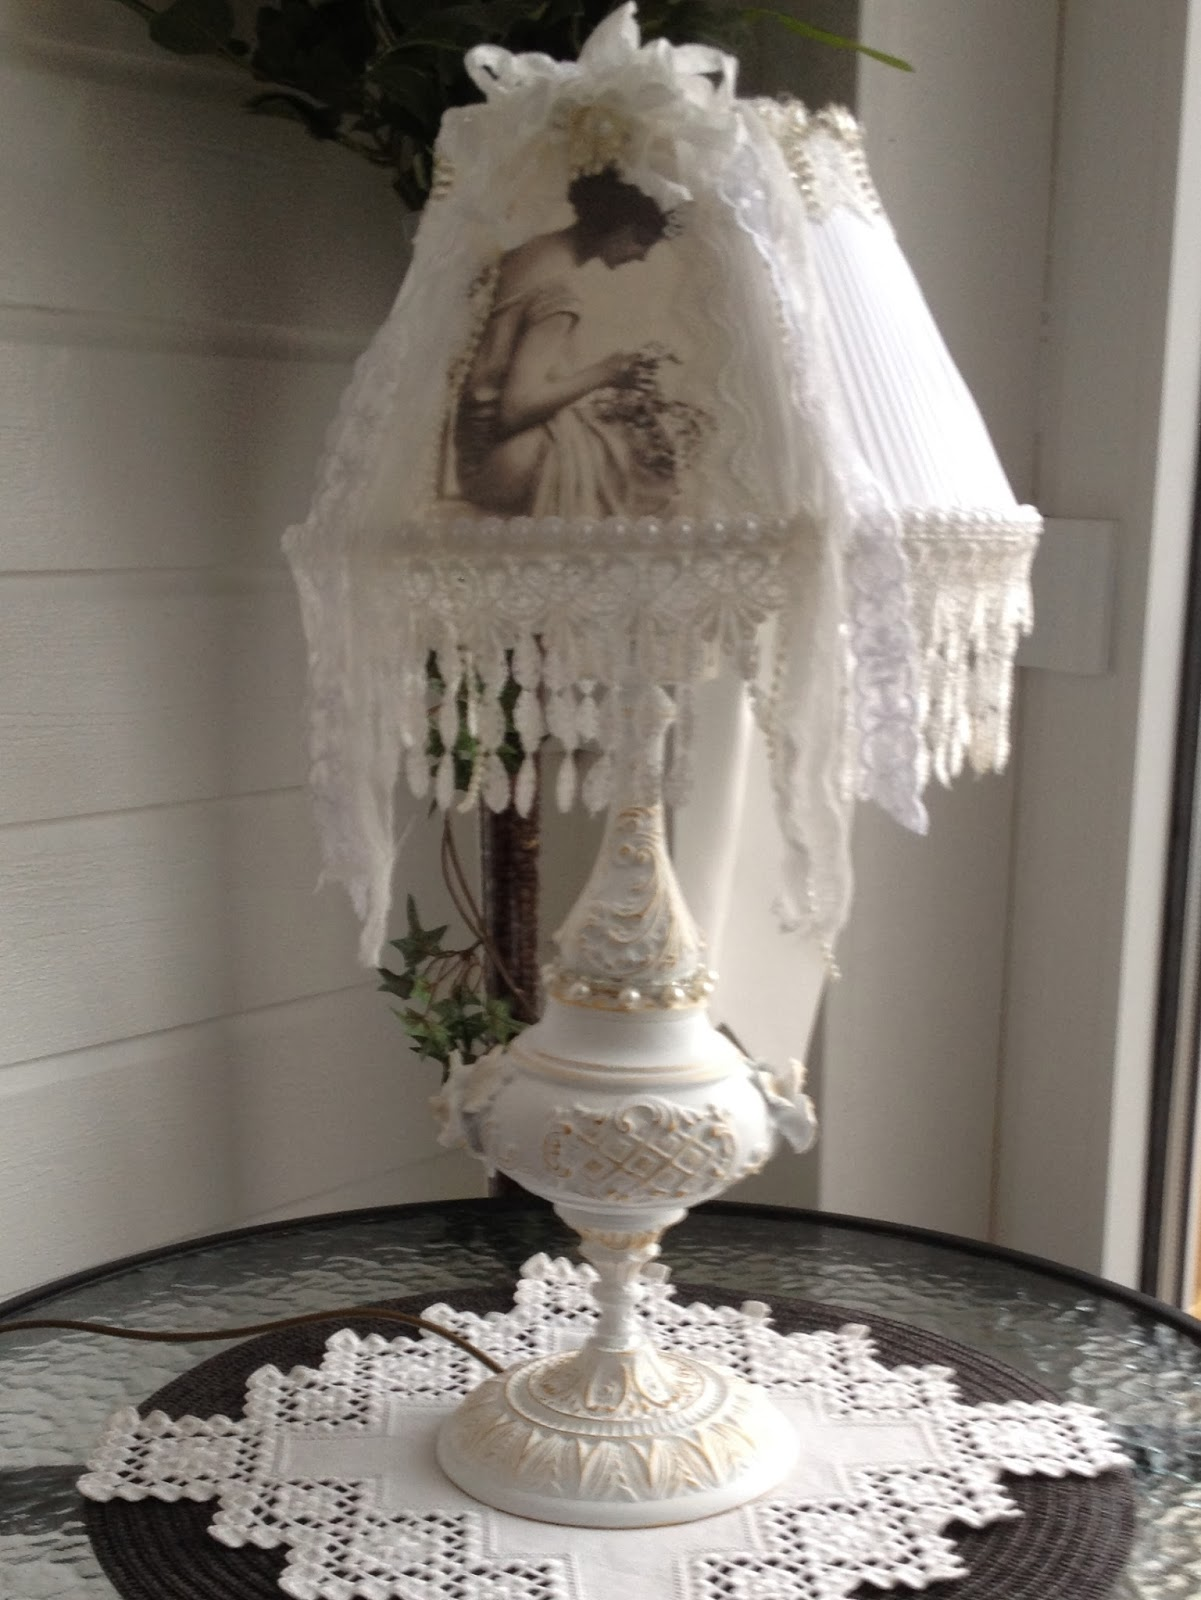 & annes papercreations: Shabby chic lamp makeover for my garden room